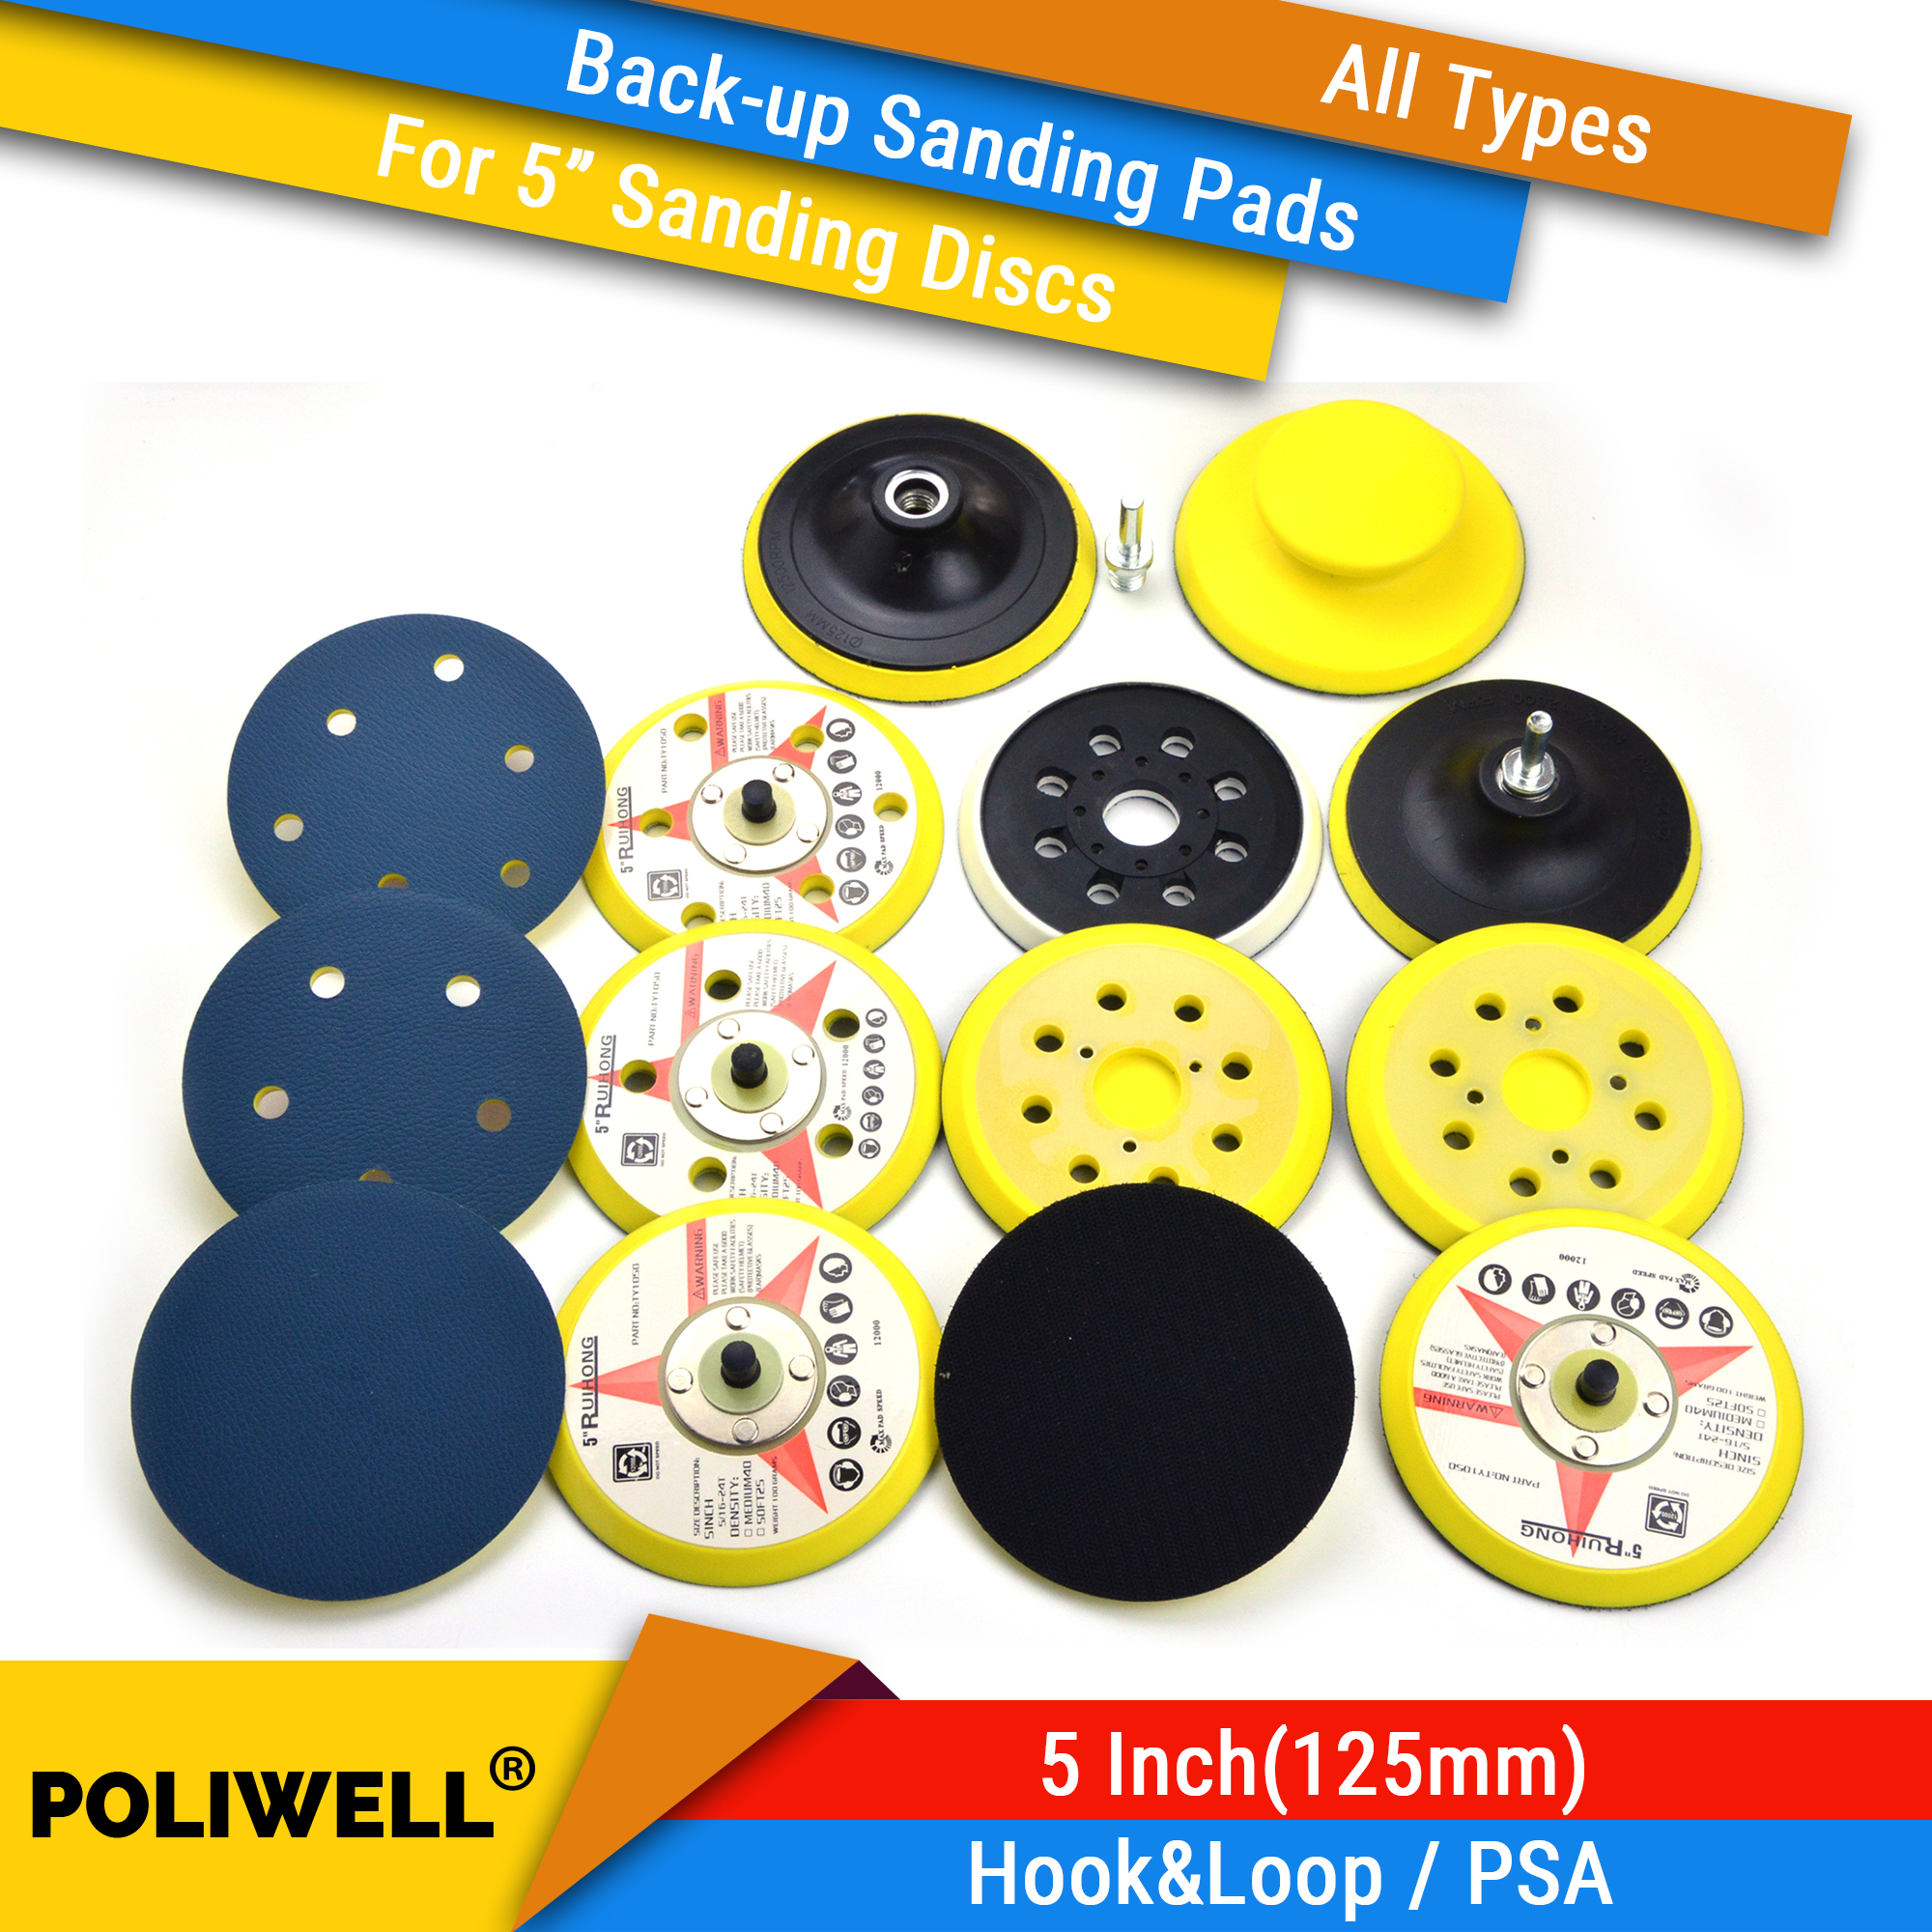 5 Inch(125mm) All Types Back-up Sanding Pads For Abrasive Sandpaper Sanding Discs For Woodworking Polishing Tool Accessories